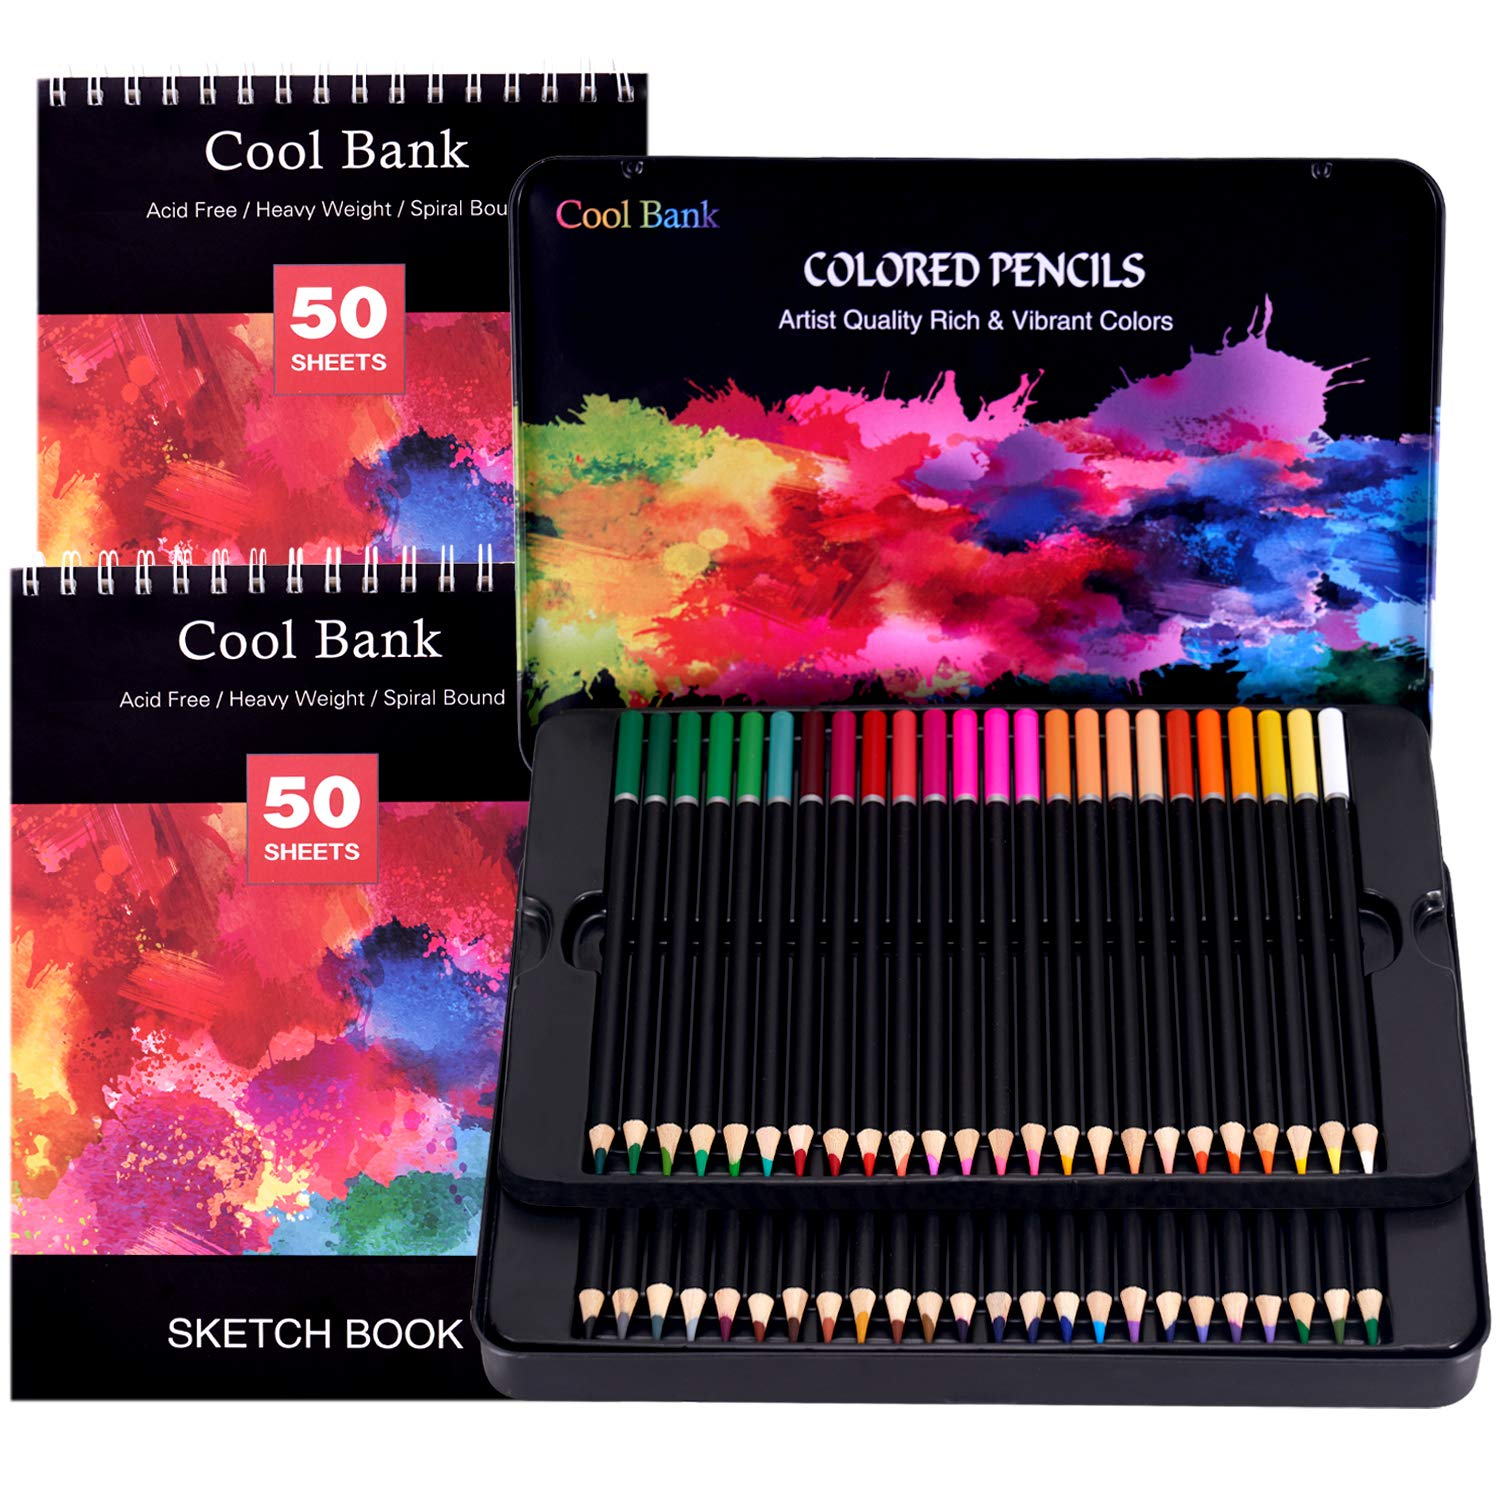 48 Colored Pencils,Art Supplies with 2 x 50 Page Drawing Pad(A4), Premium Artist Soft Series Lead with Vibrant Colors for Sketching& Coloring,Artist Pencils for Beginners & Professionals in Tin Box by COOL BANK